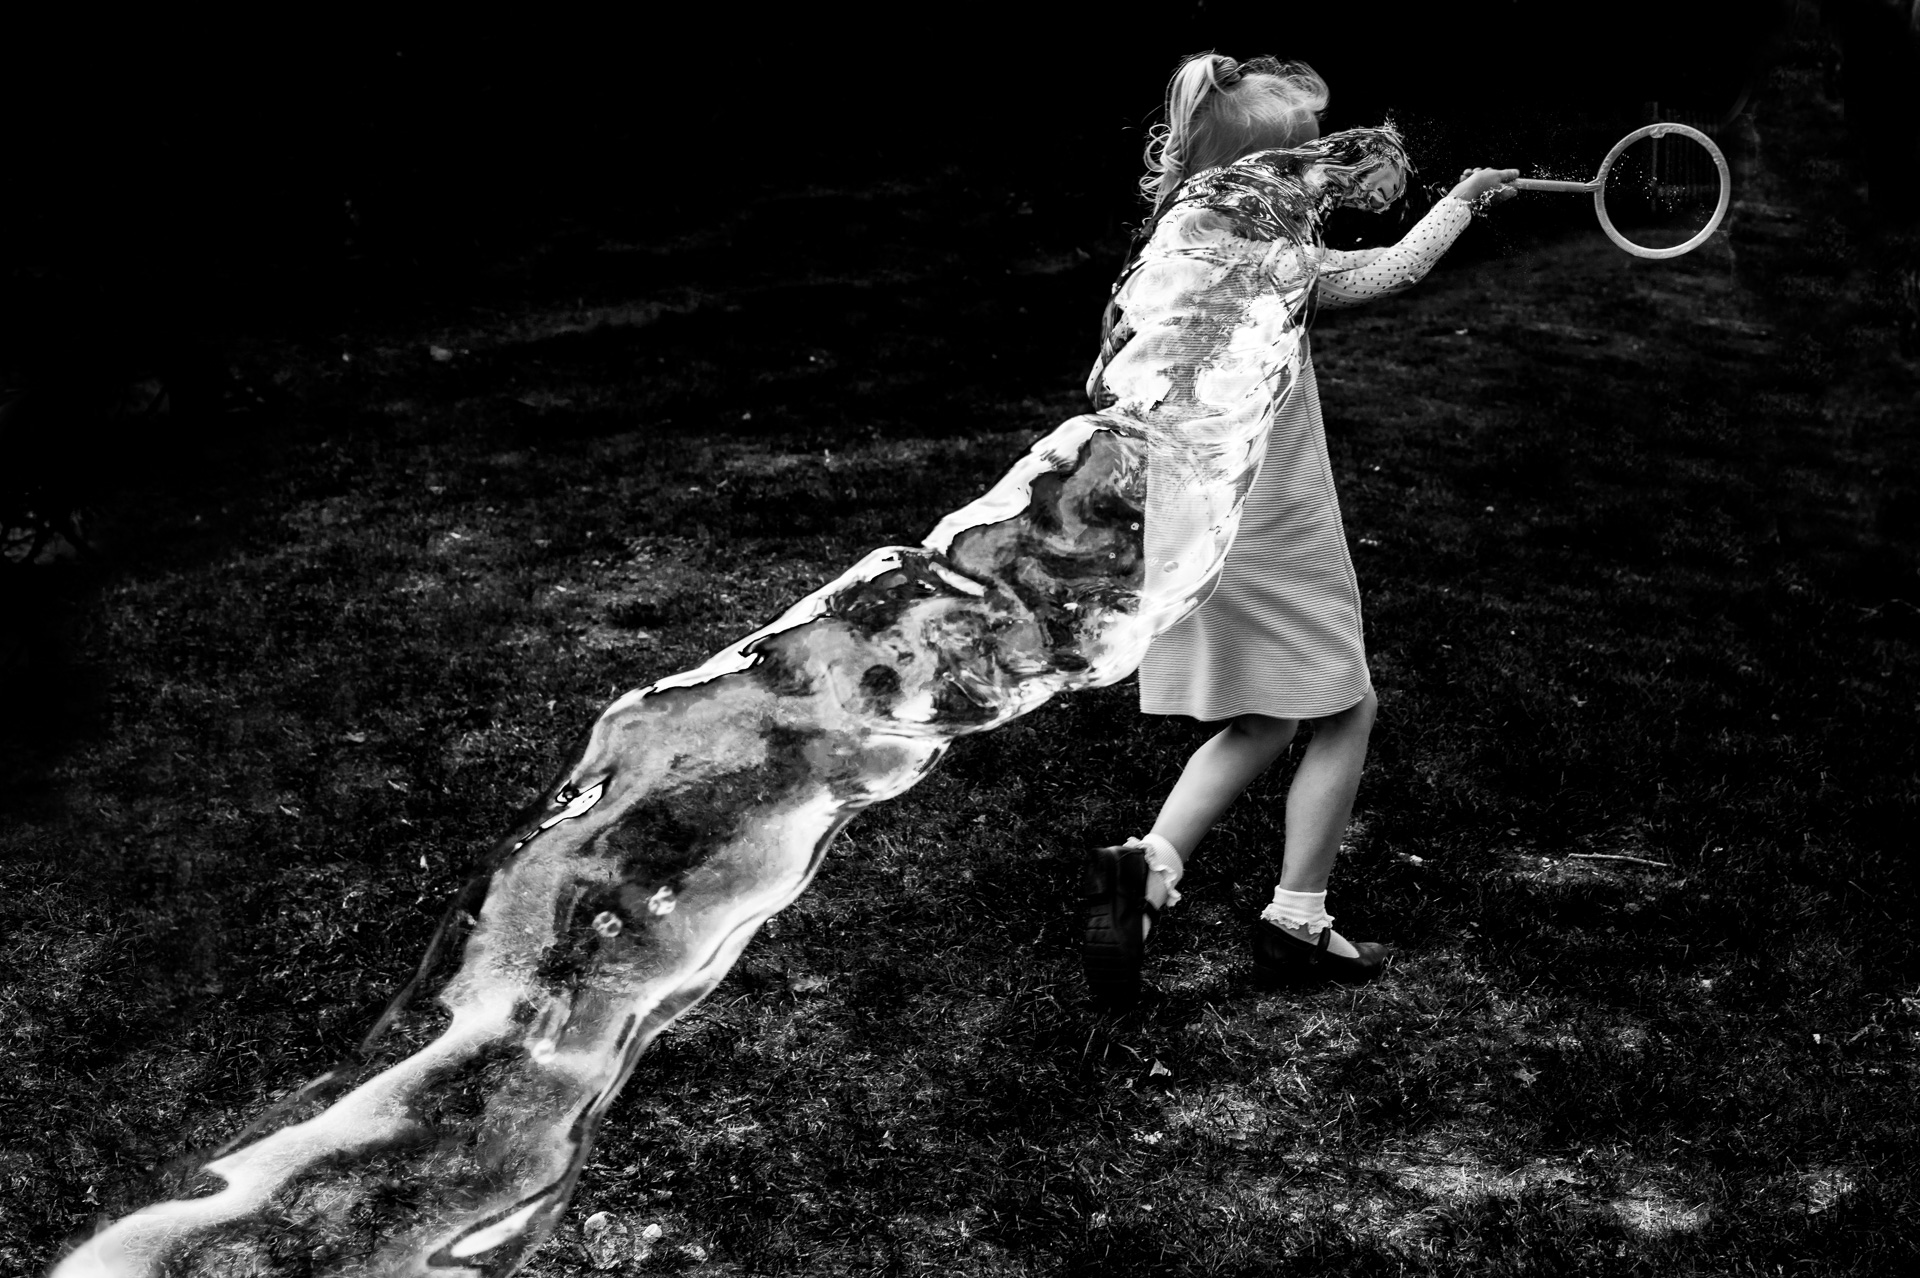 Kids play with bubbles